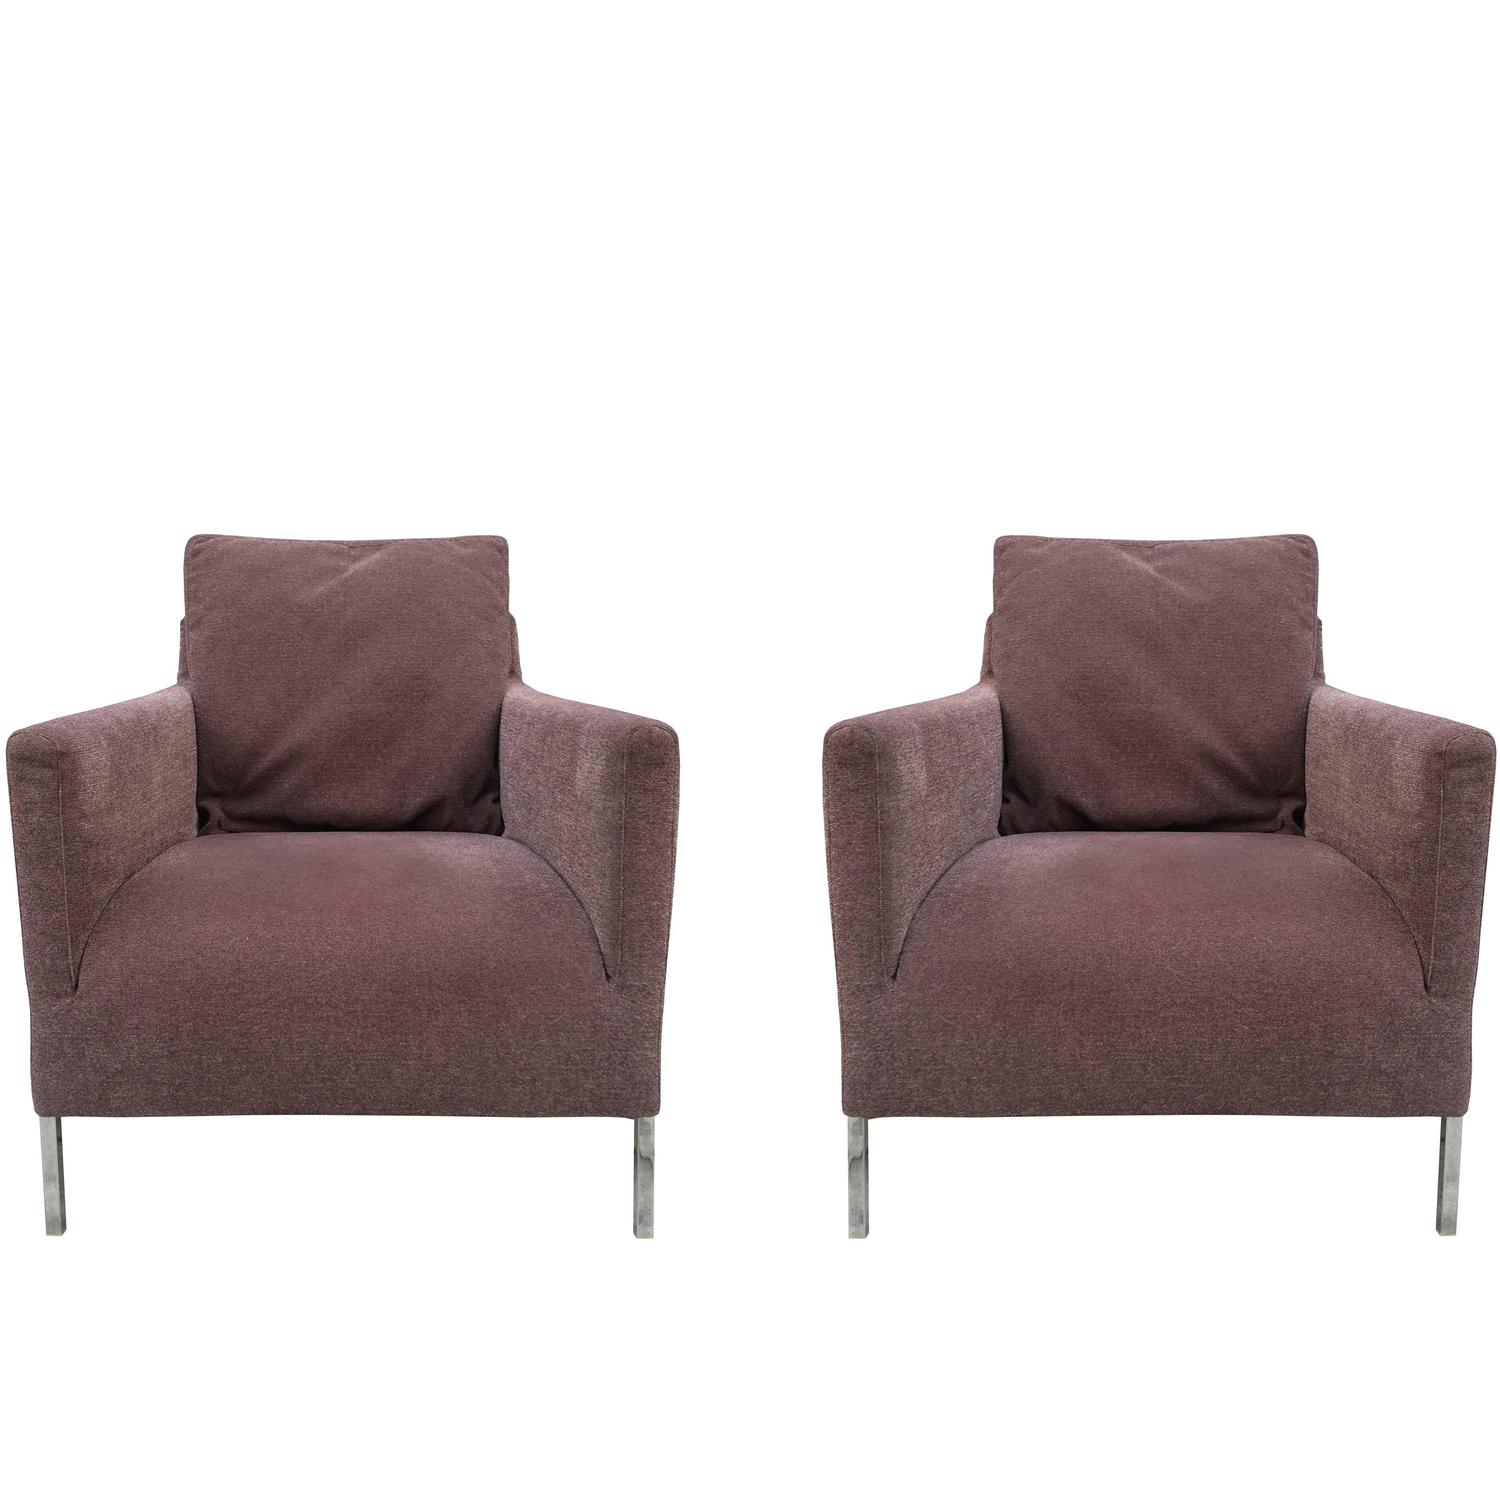 pair of b b italia solo chairs by antonio citterio for. Black Bedroom Furniture Sets. Home Design Ideas